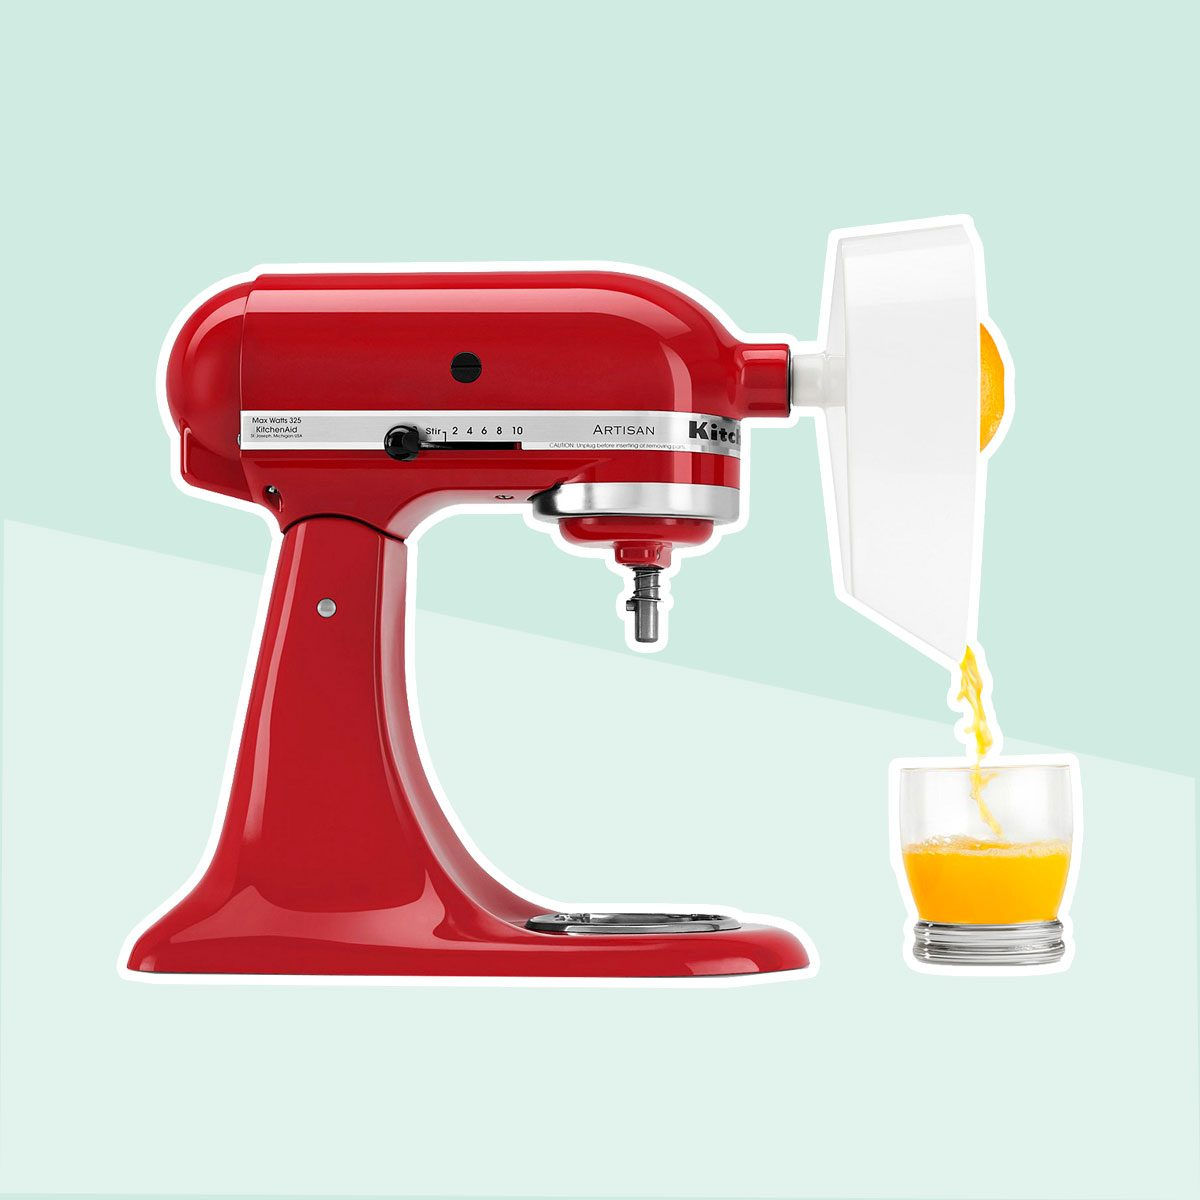 Citrus Juicer Attachment for a Stand Mixer